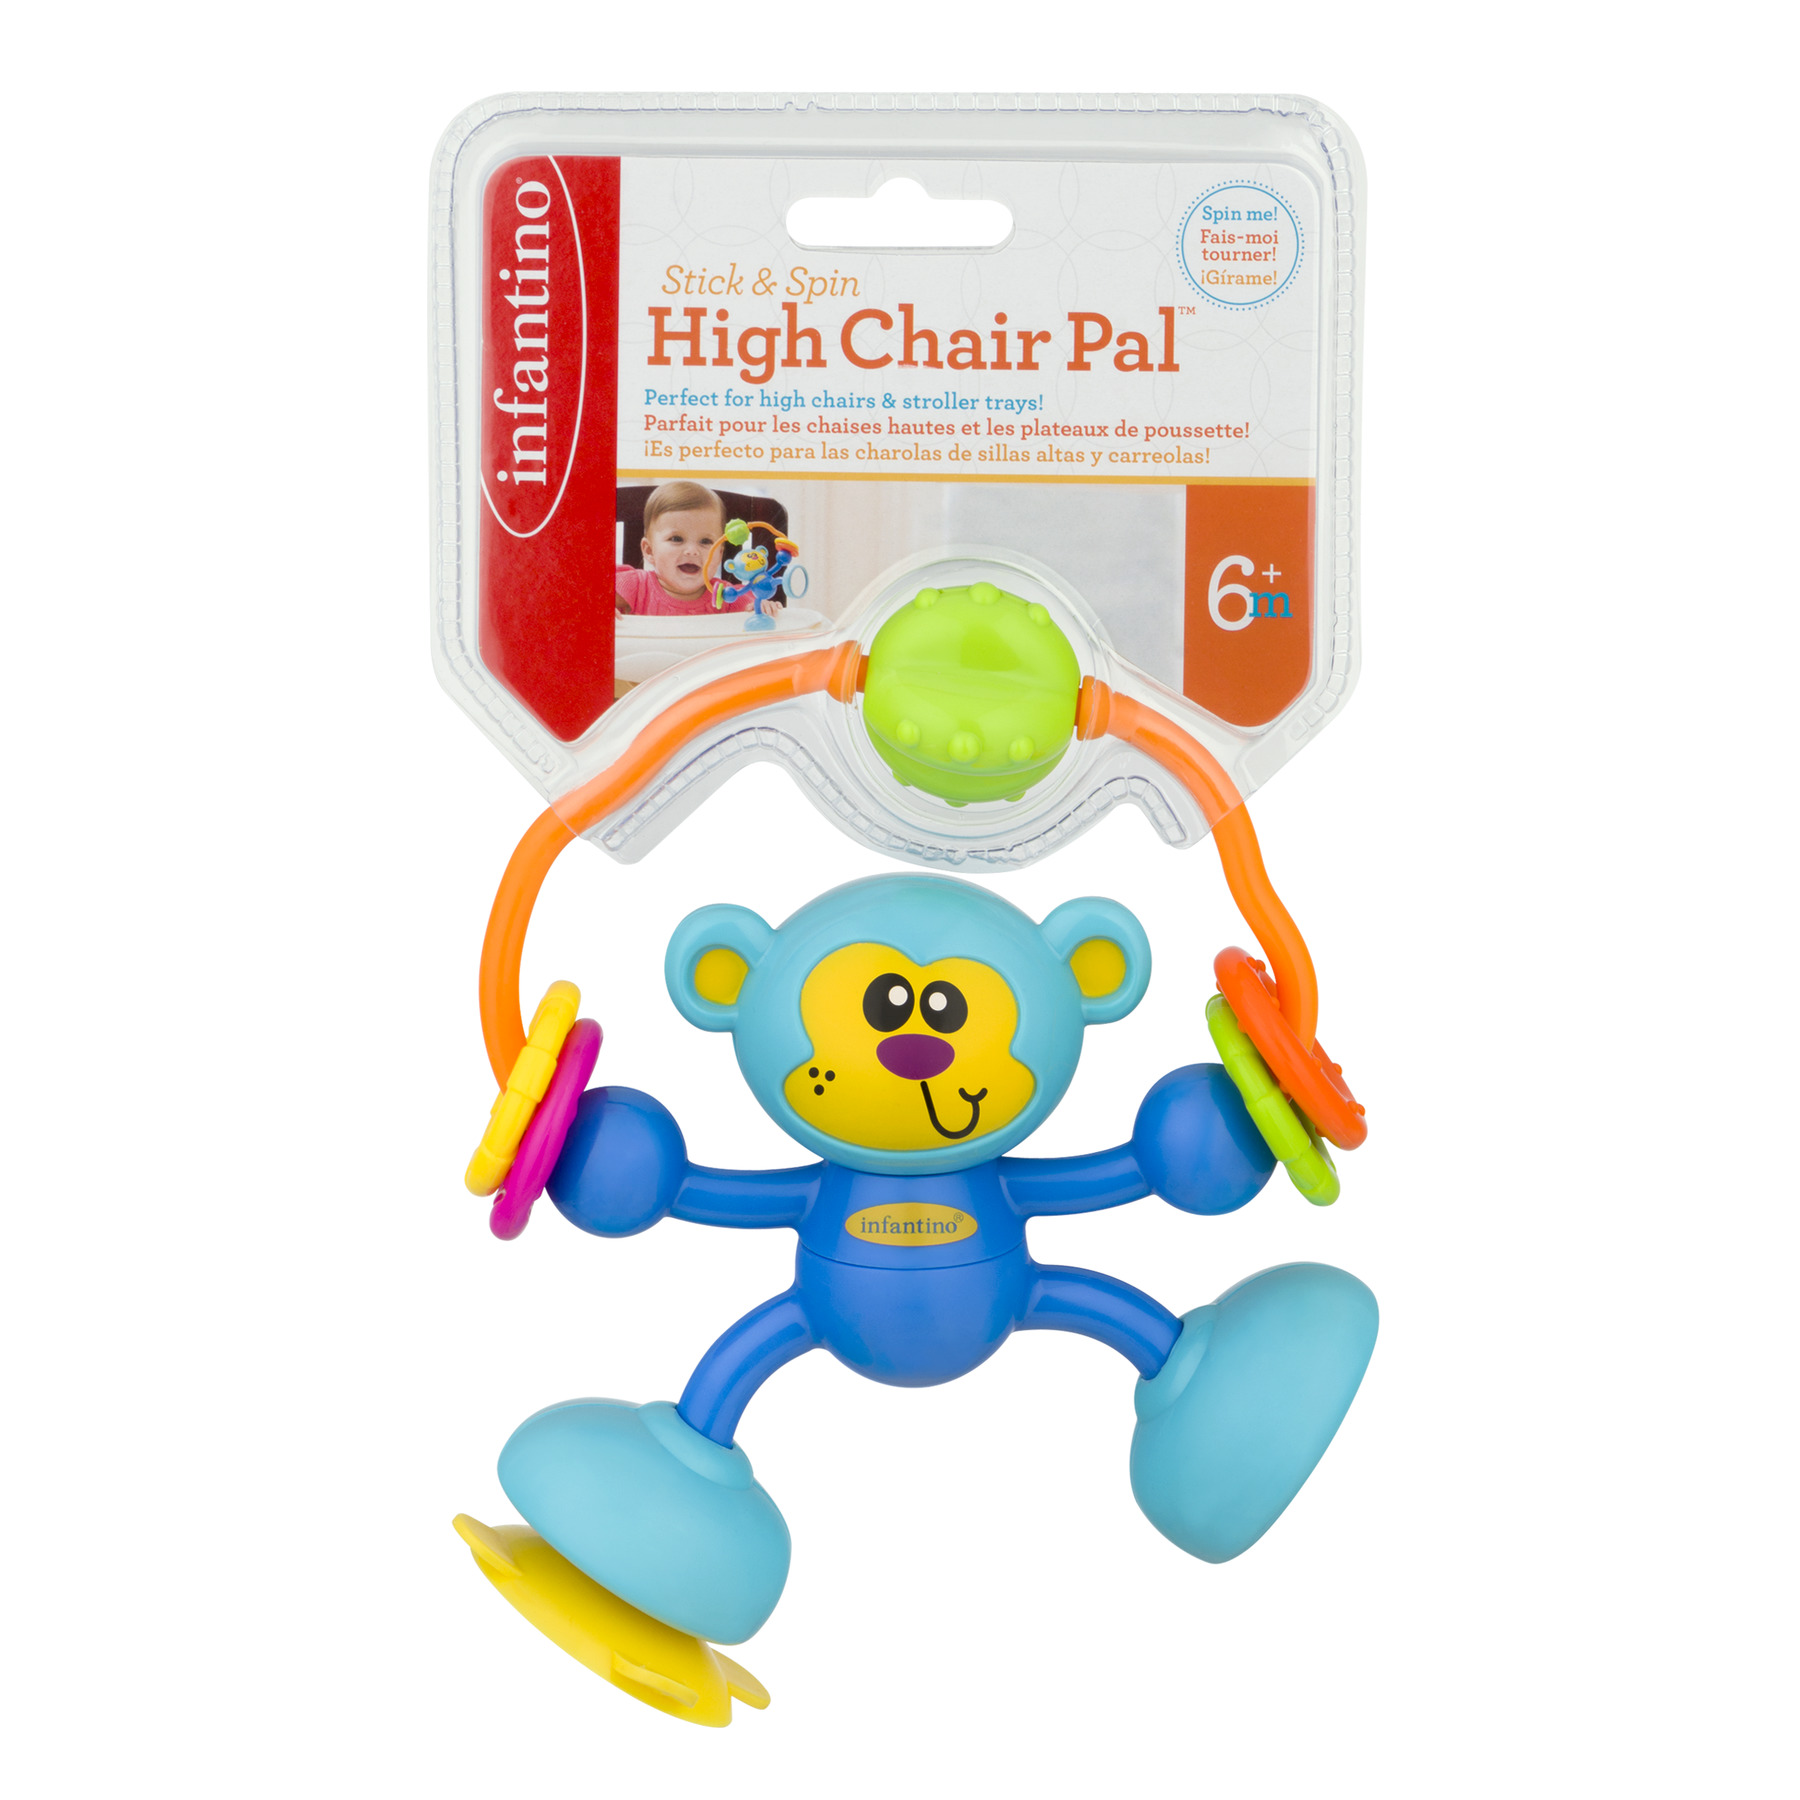 Infantino Stick & Spin High Chair Pal 6+m, 1.0 CT